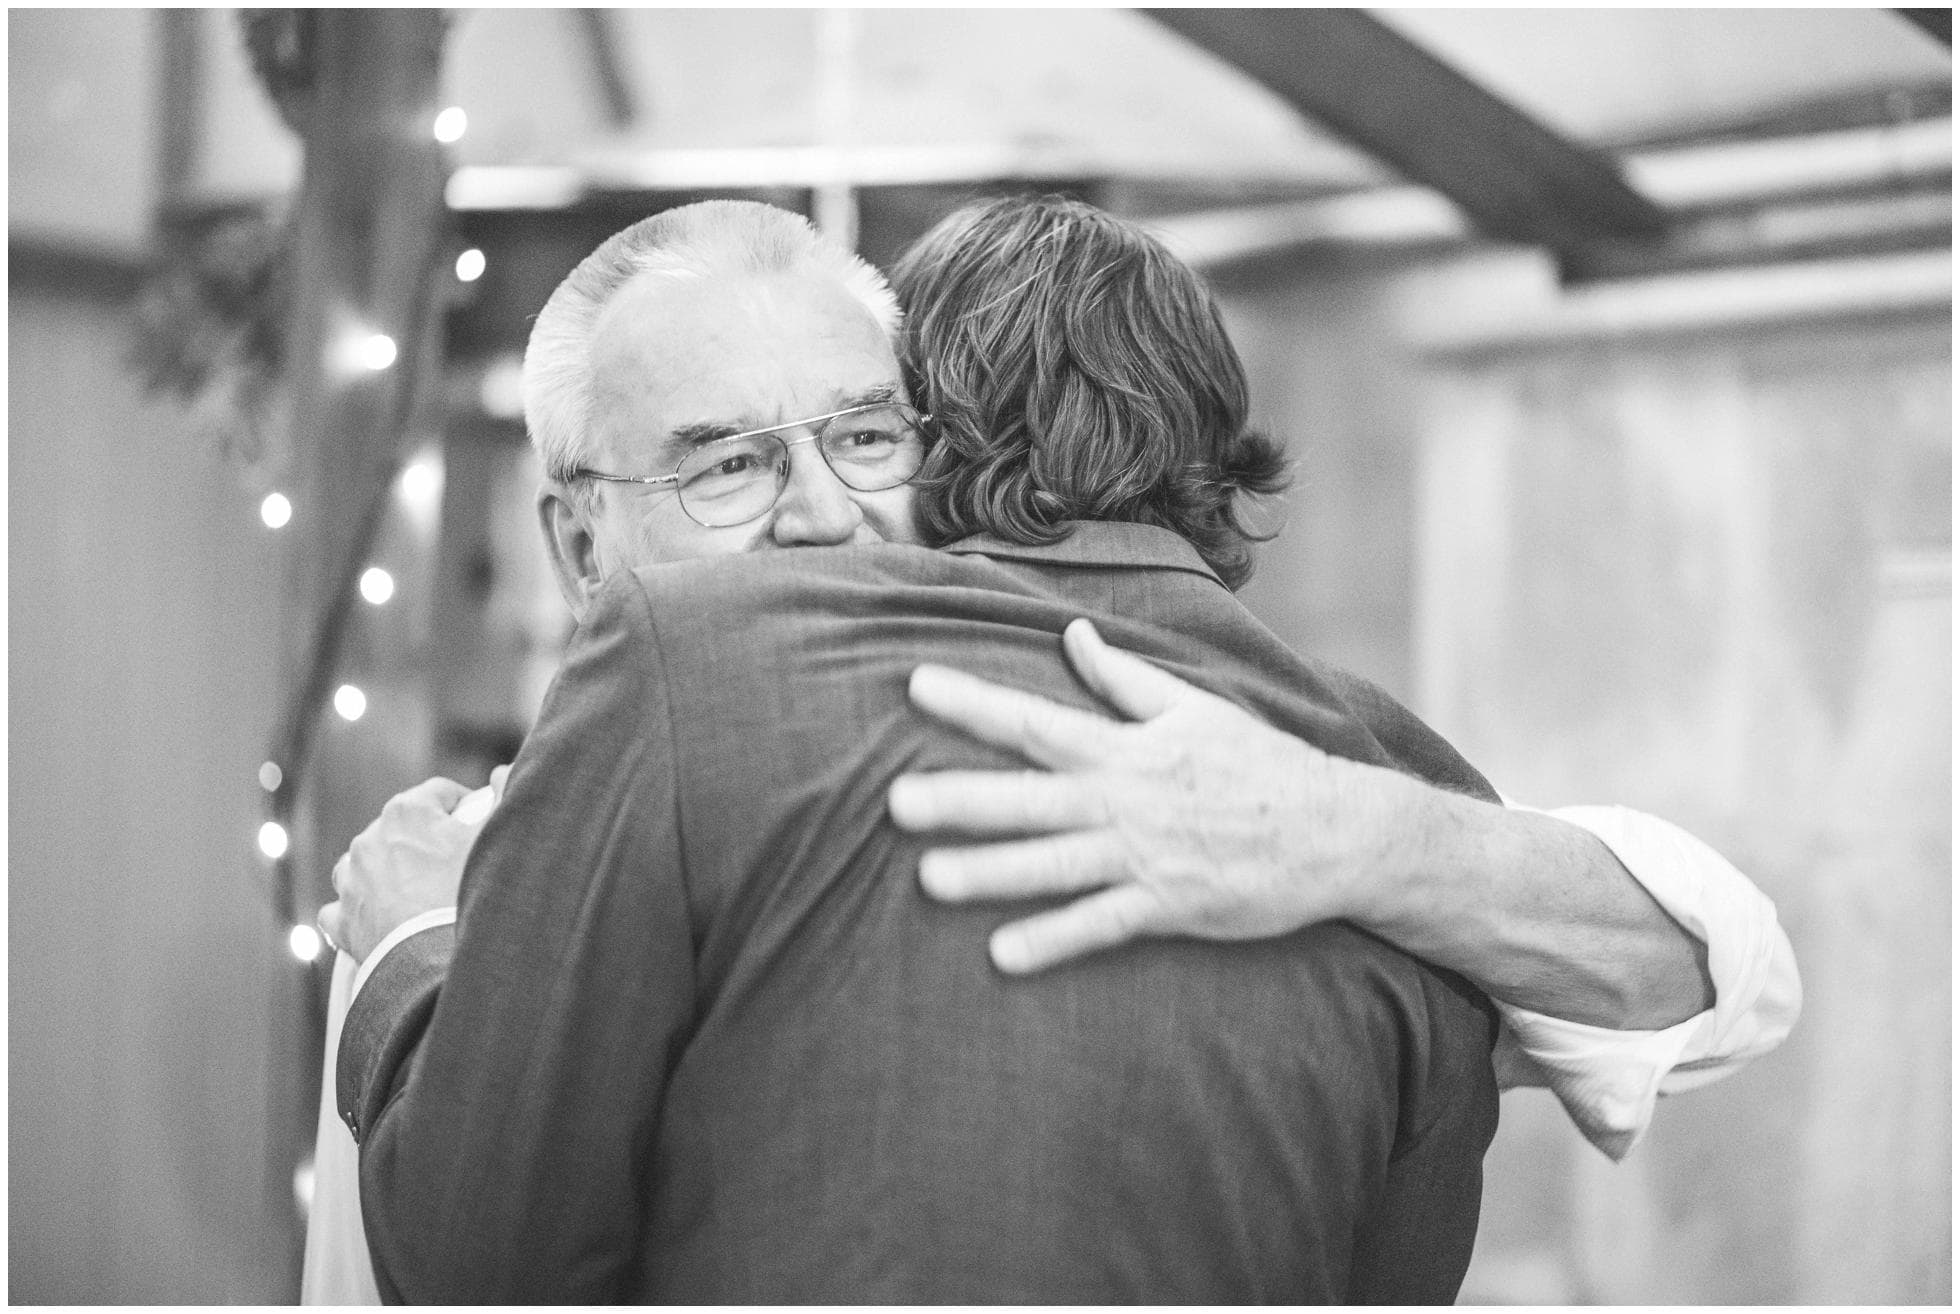 The father of the groom hugs his son after his speech